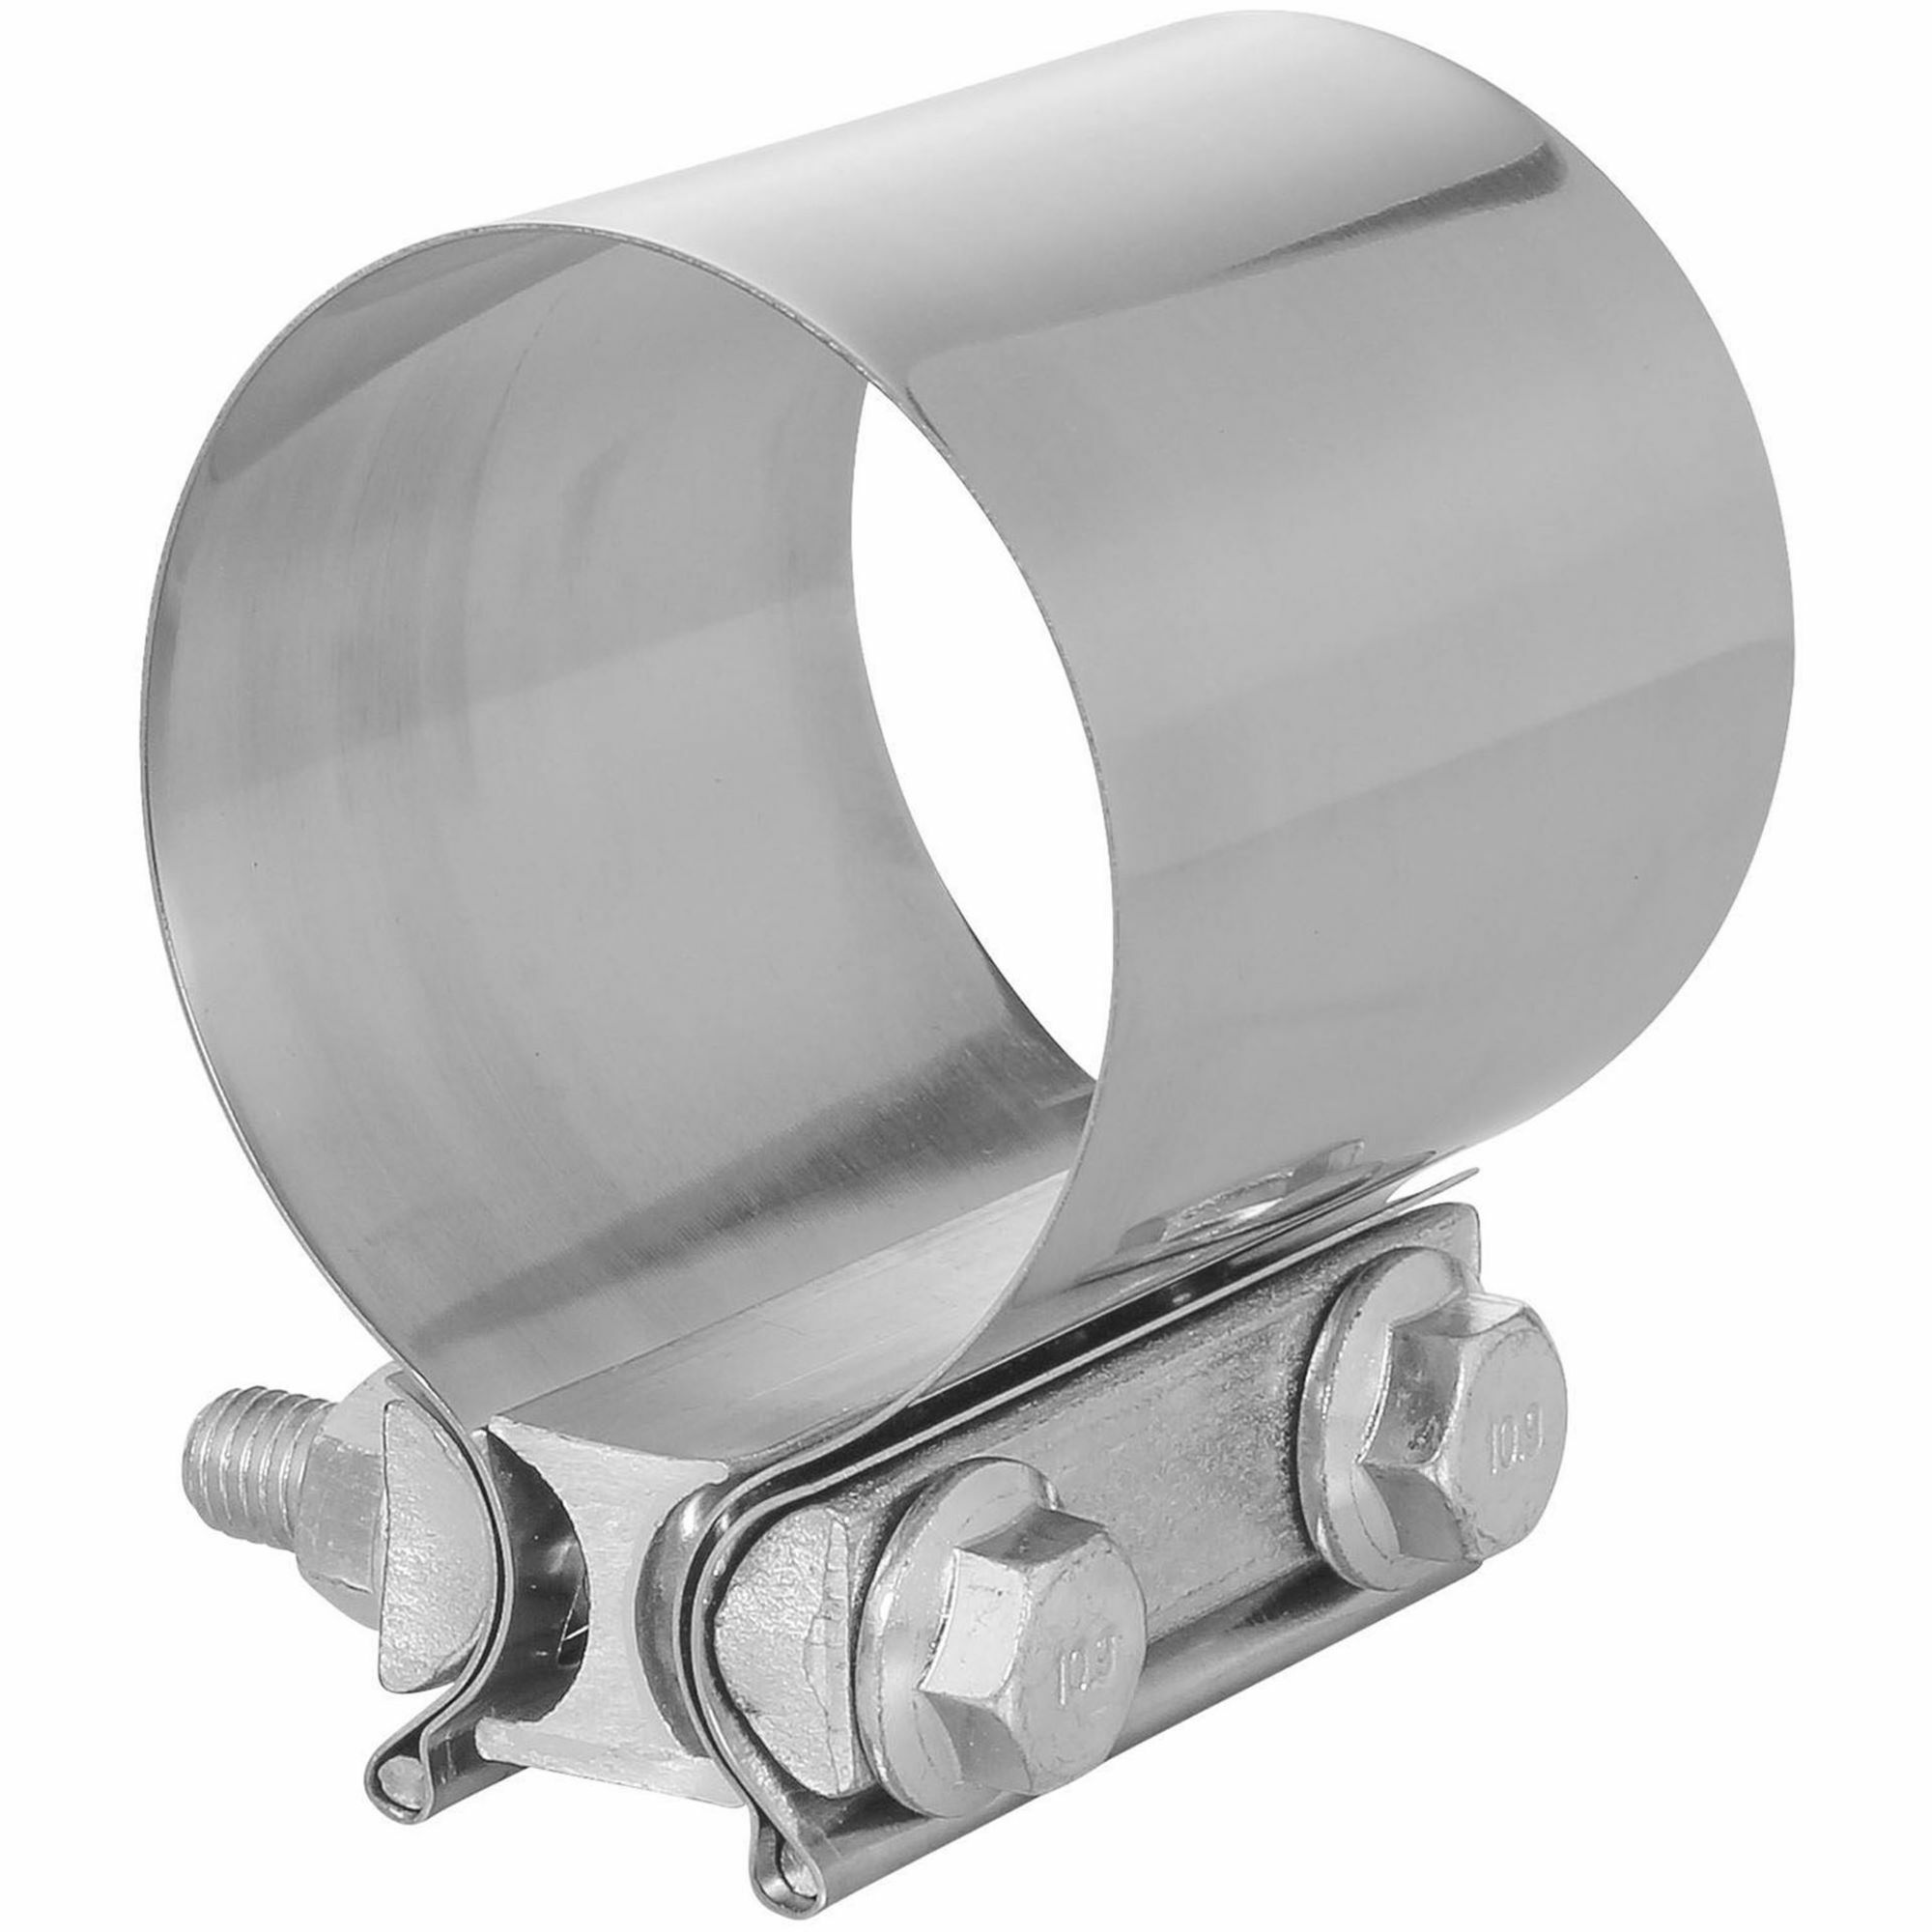 Picture of TOTALFLOW TF-JB64 Butt Joint Exhaust Muffler Clamp Band   5 Inch